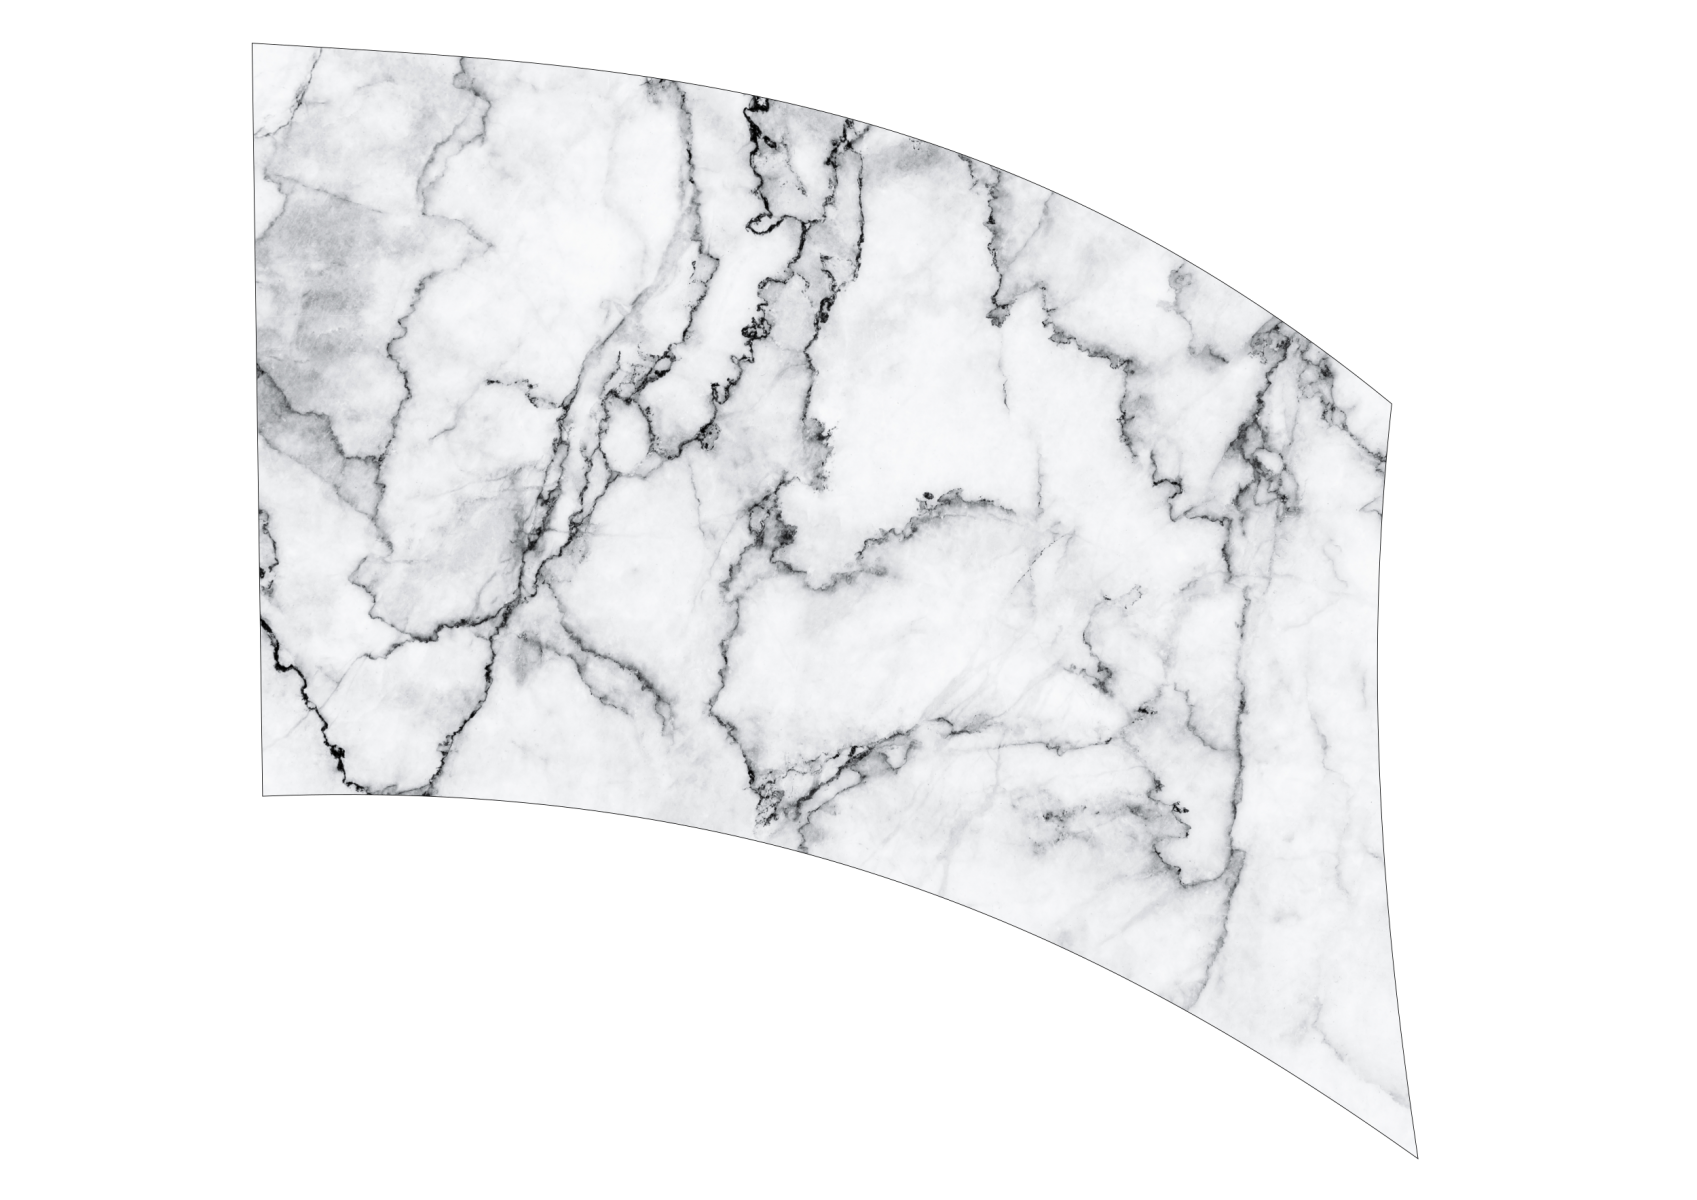 020102s - 36x54 Standard Marble 2